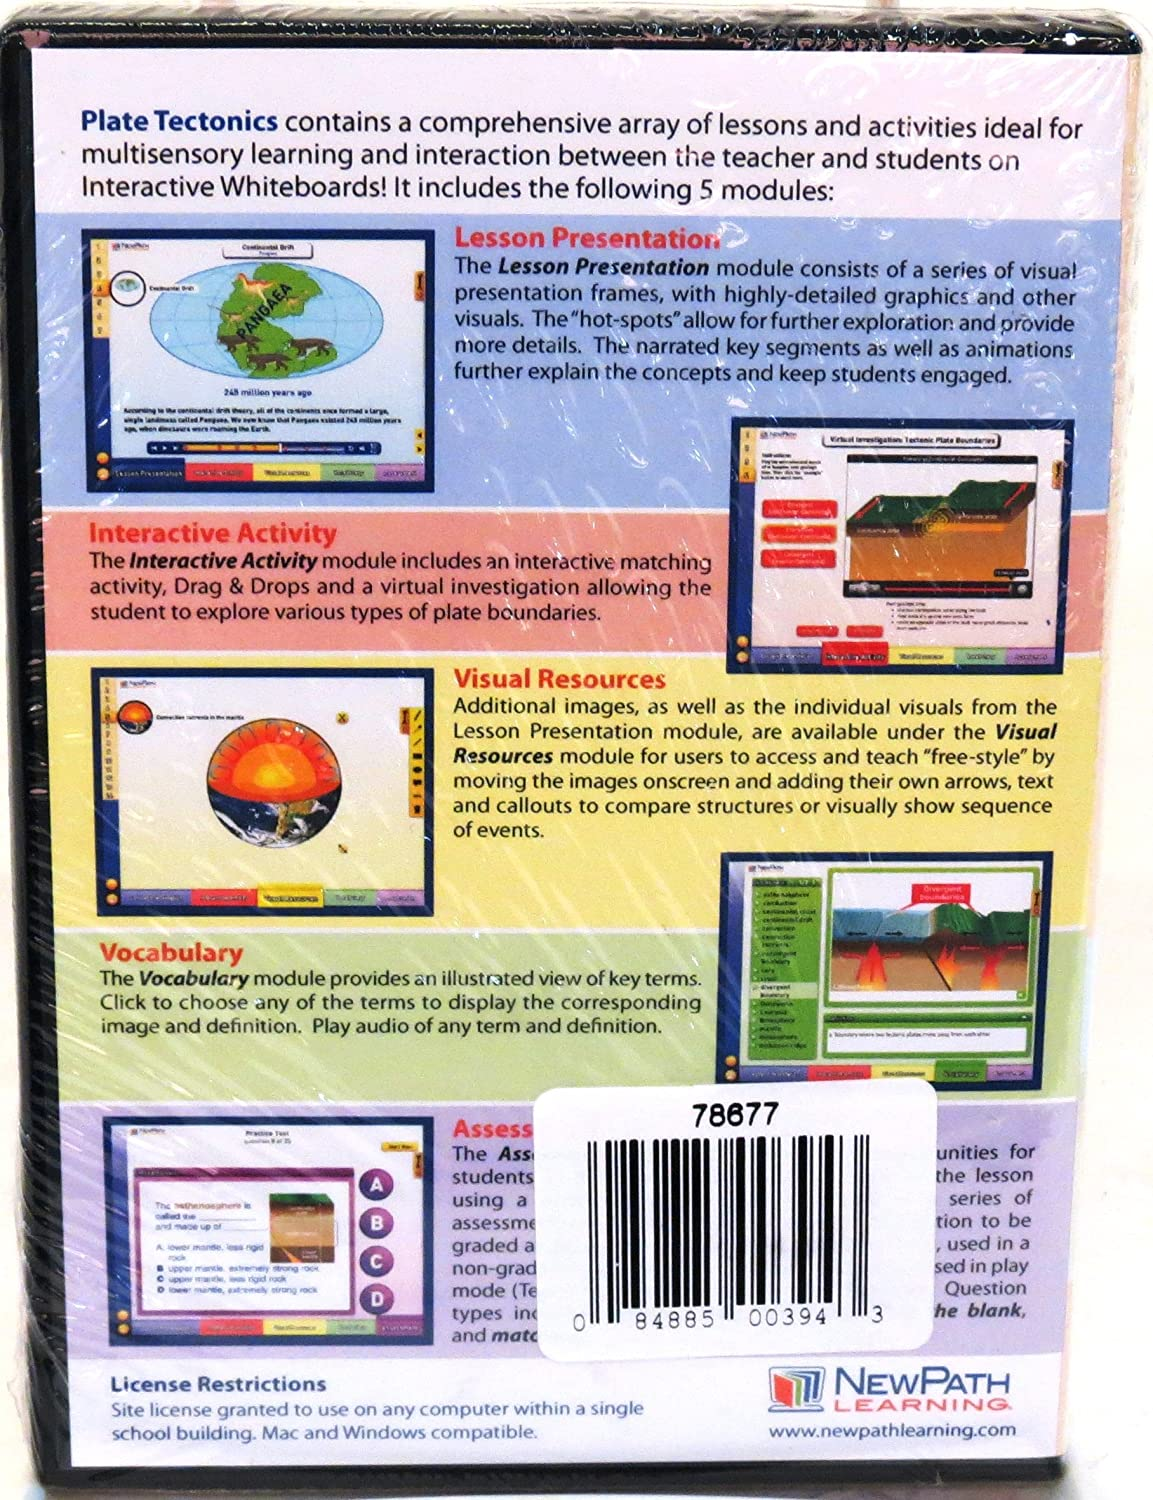 Plate Tectonics, Site License CD-ROM: Multimedia Lesson for Interactive Whiteboards 78677 ETA//Cuisenaire